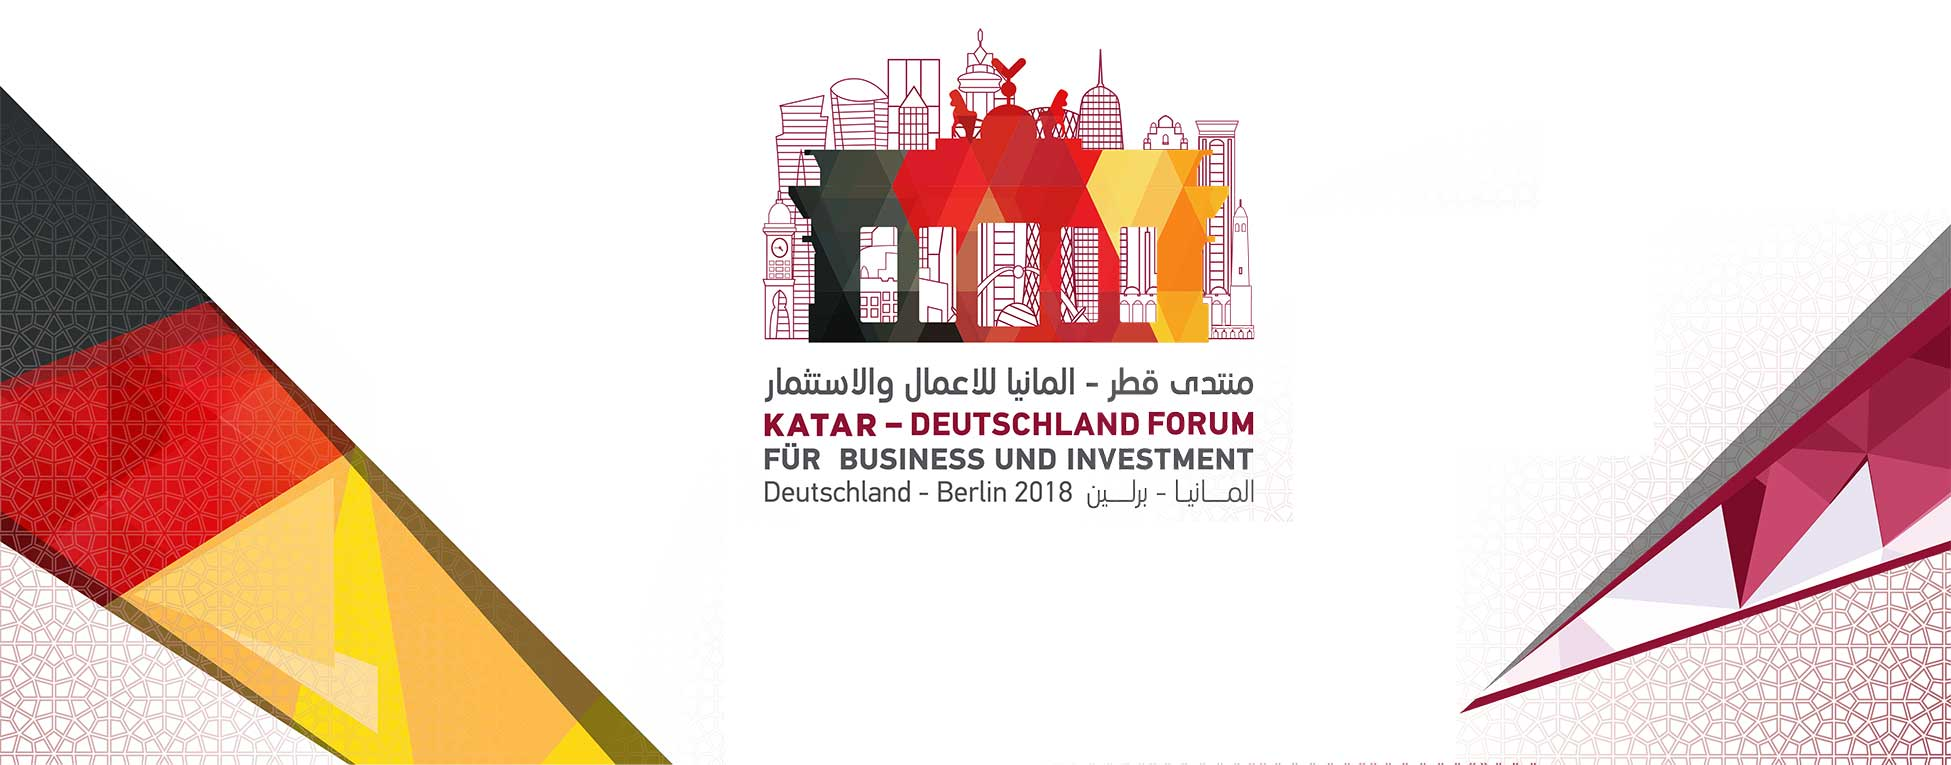 Qatar Germany Business and Investment Forum